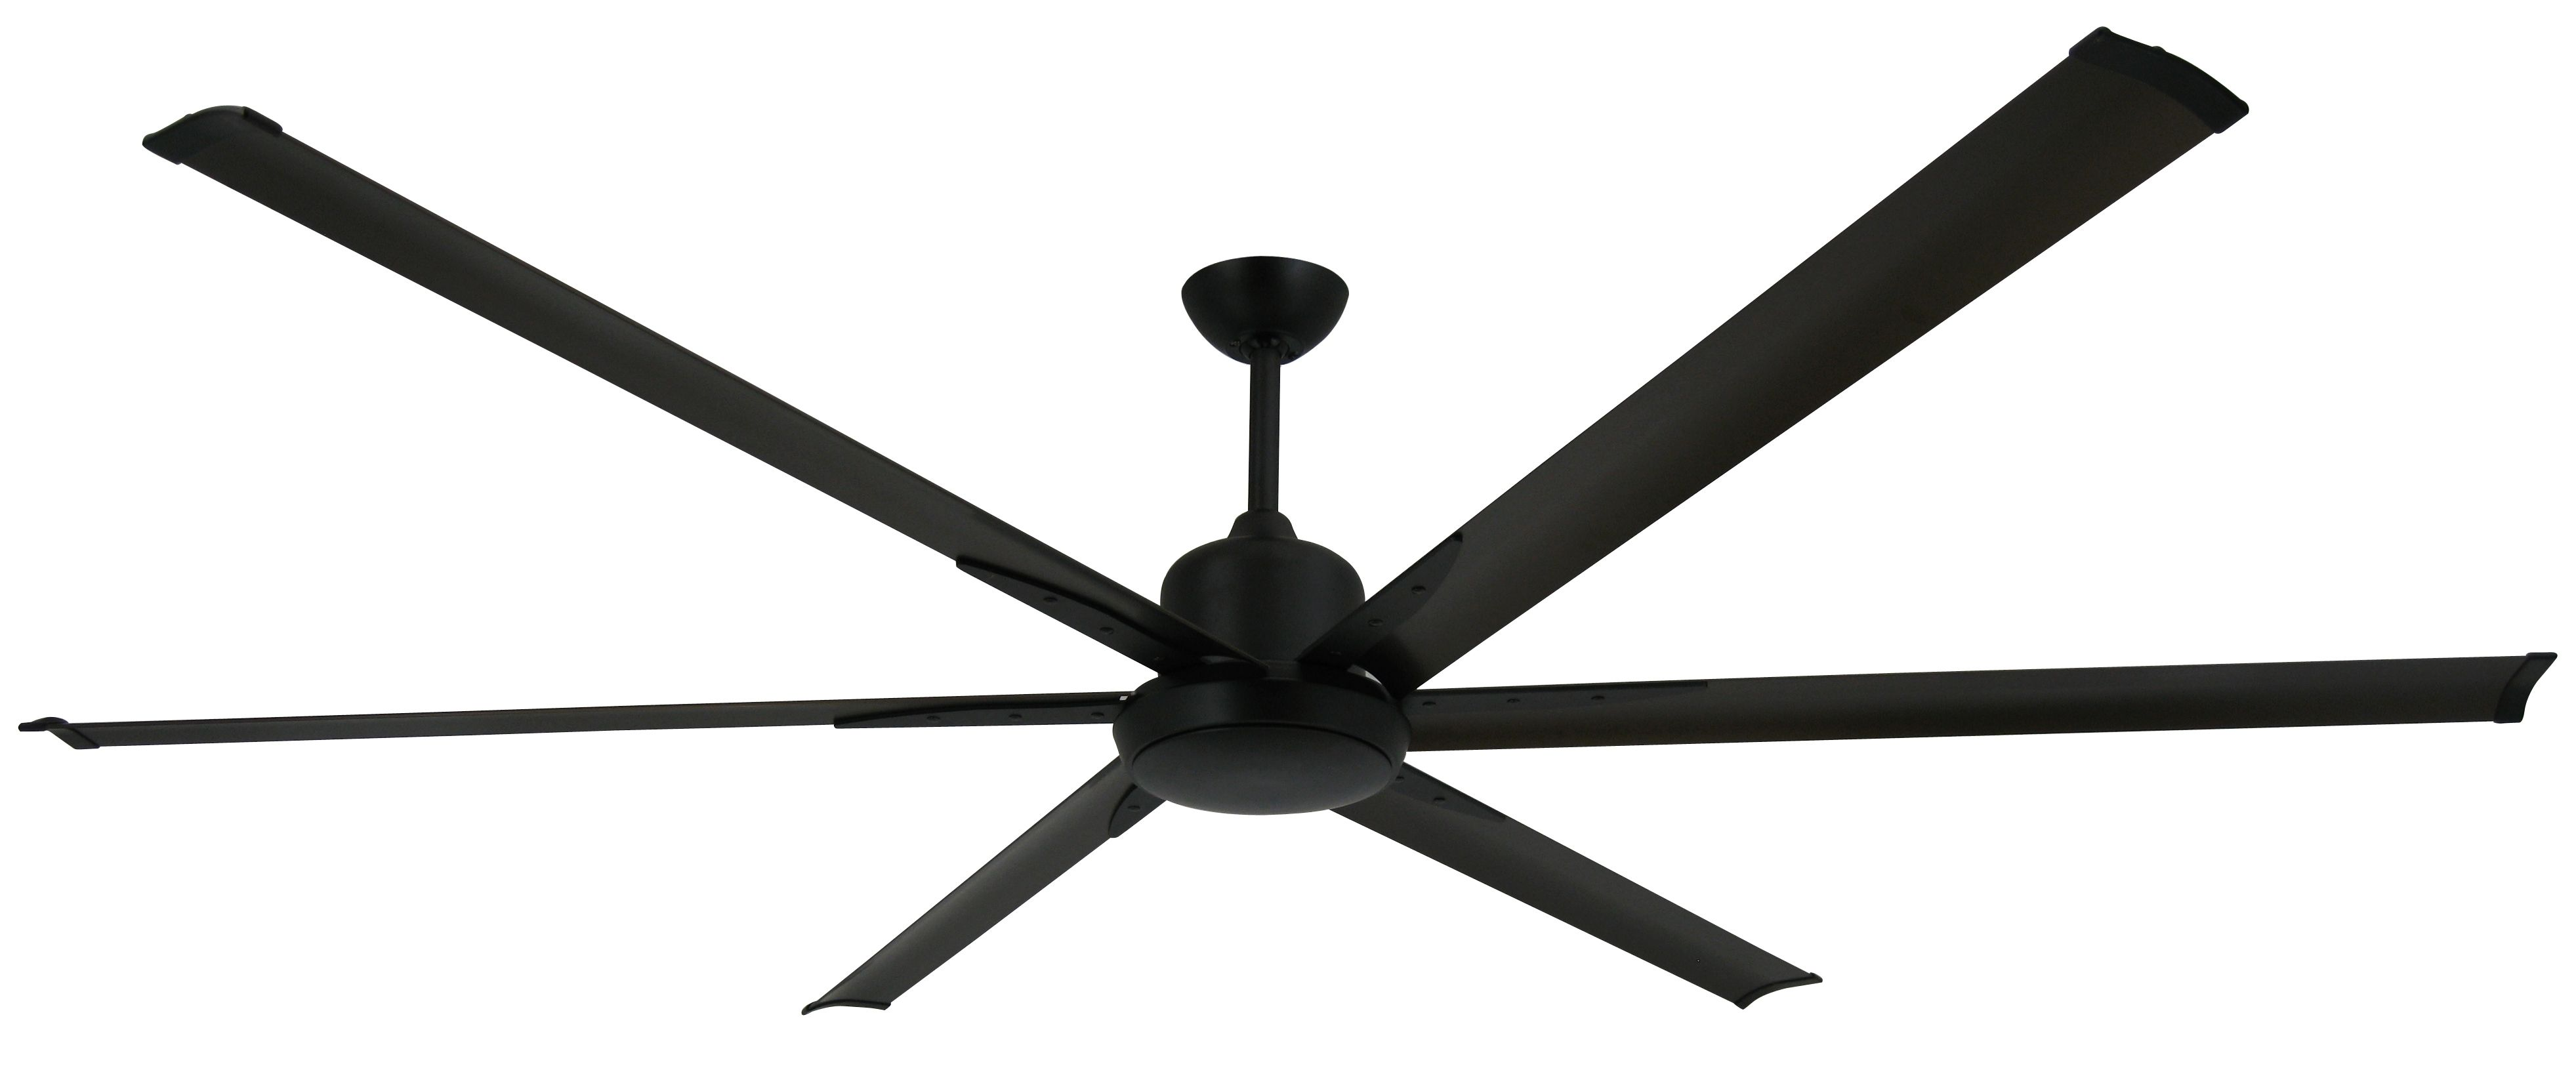 exterior ceilings kit fan light ceiling rustic outdoor with fans porch